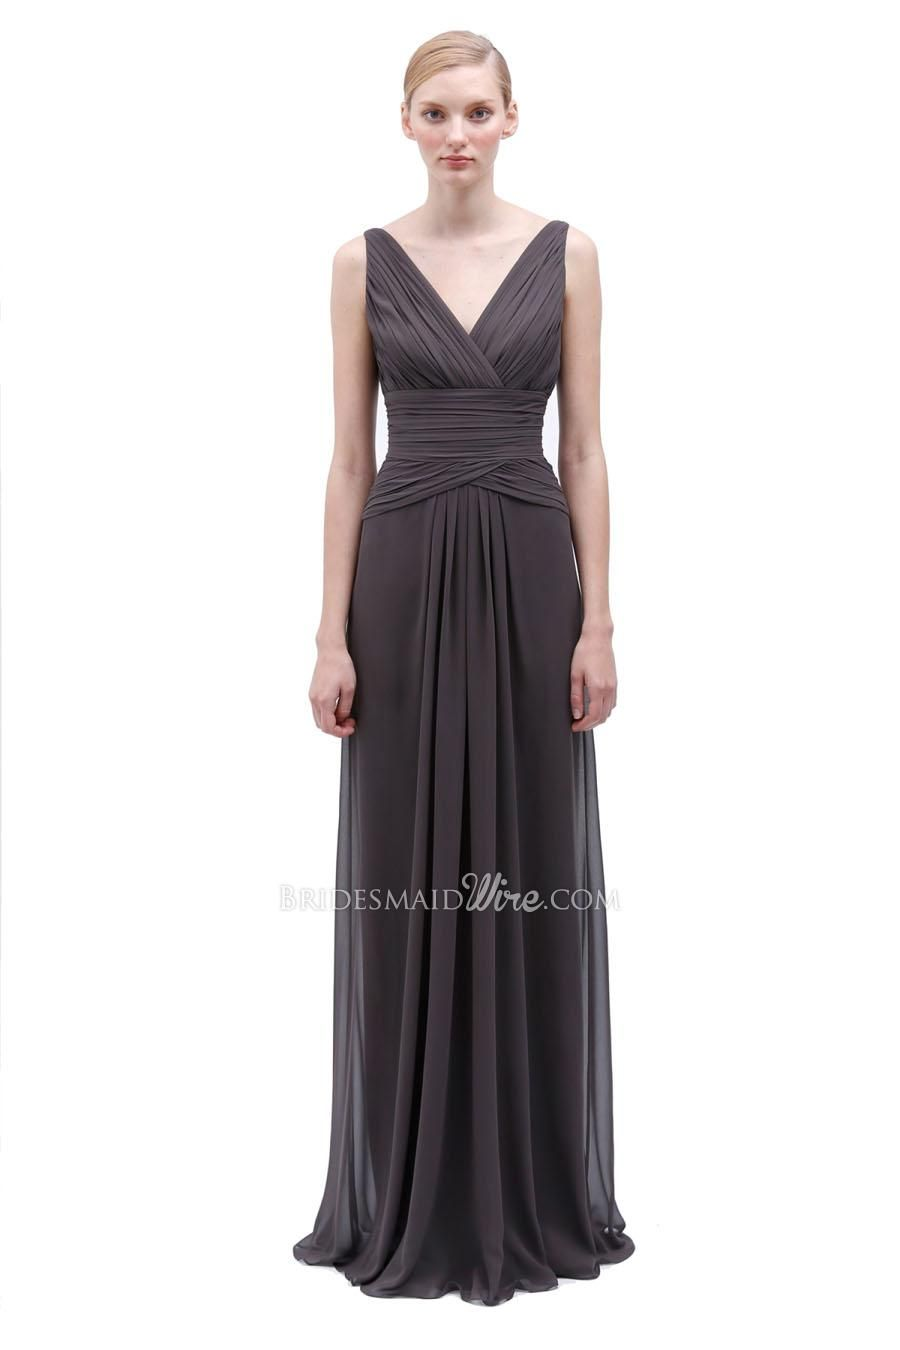 charcoal sleeveless v-neck chiffon floor length bridesmaid dress ...